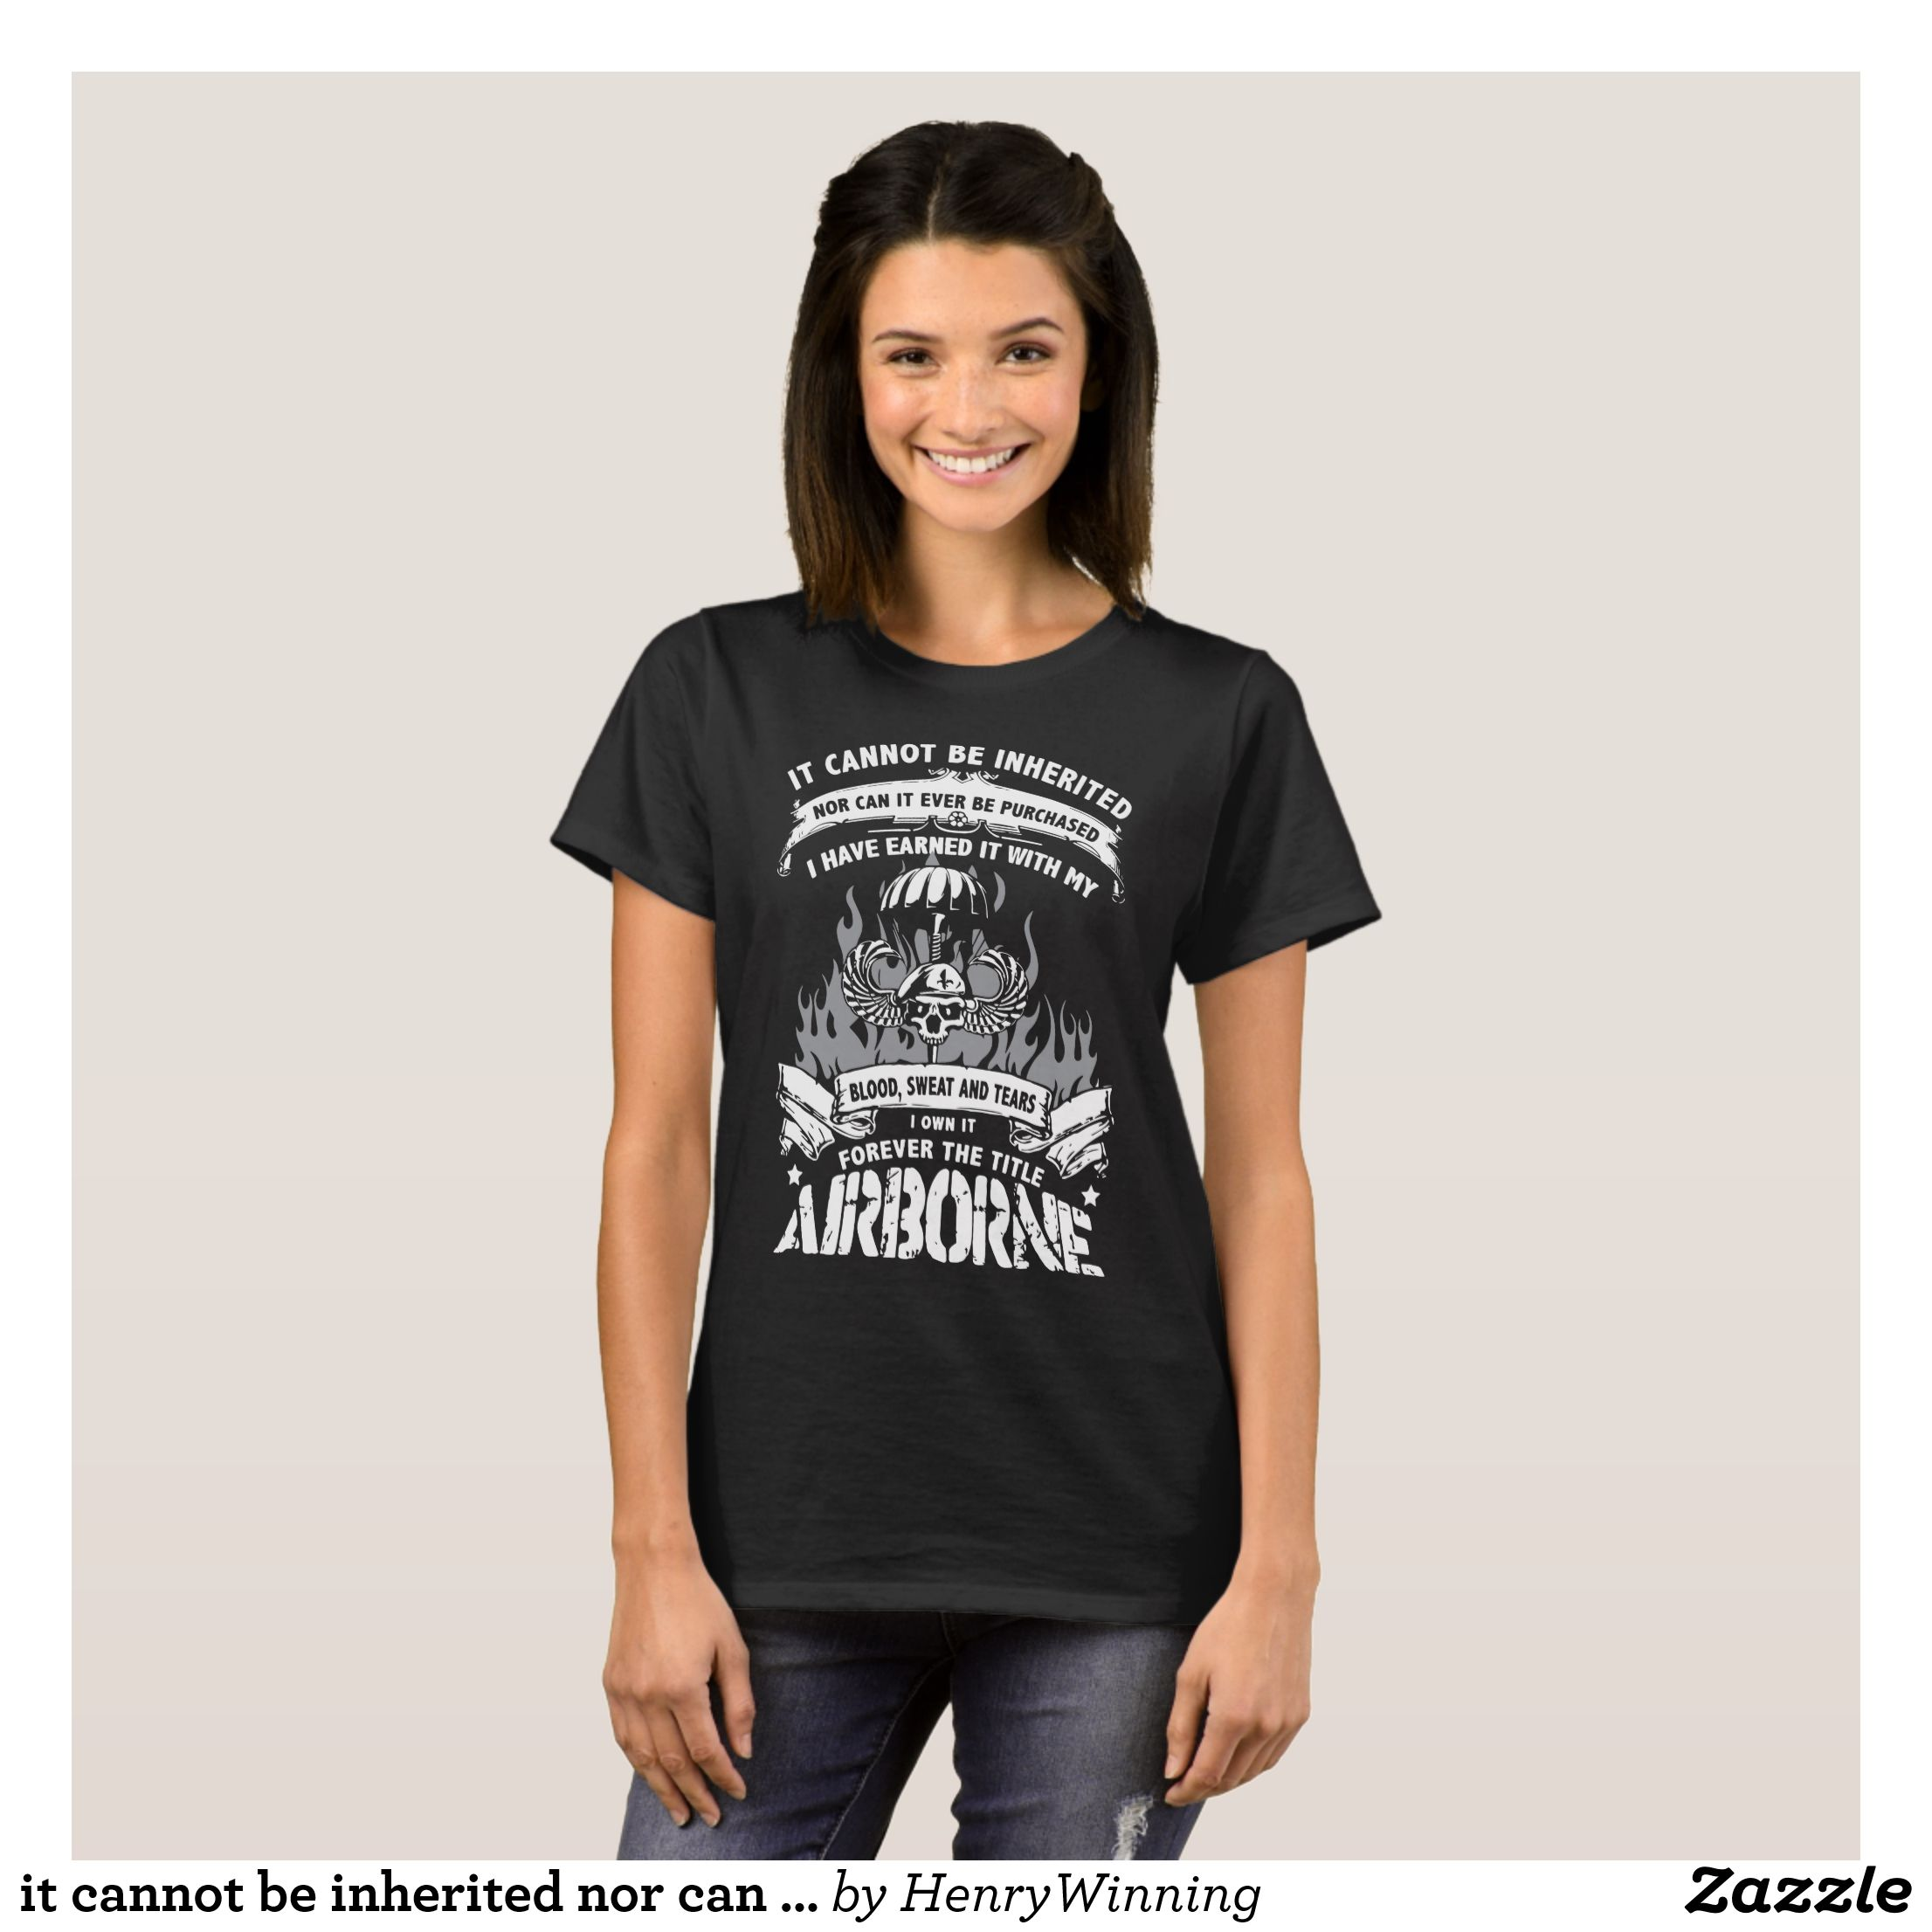 cc1f9b54026b it cannot be inherited nor can it ever be pruchase T-Shirt - Fashionable Women s  Shirts By Creative Talented Graphic Designers -  shirts  tshirts  fashion  ...